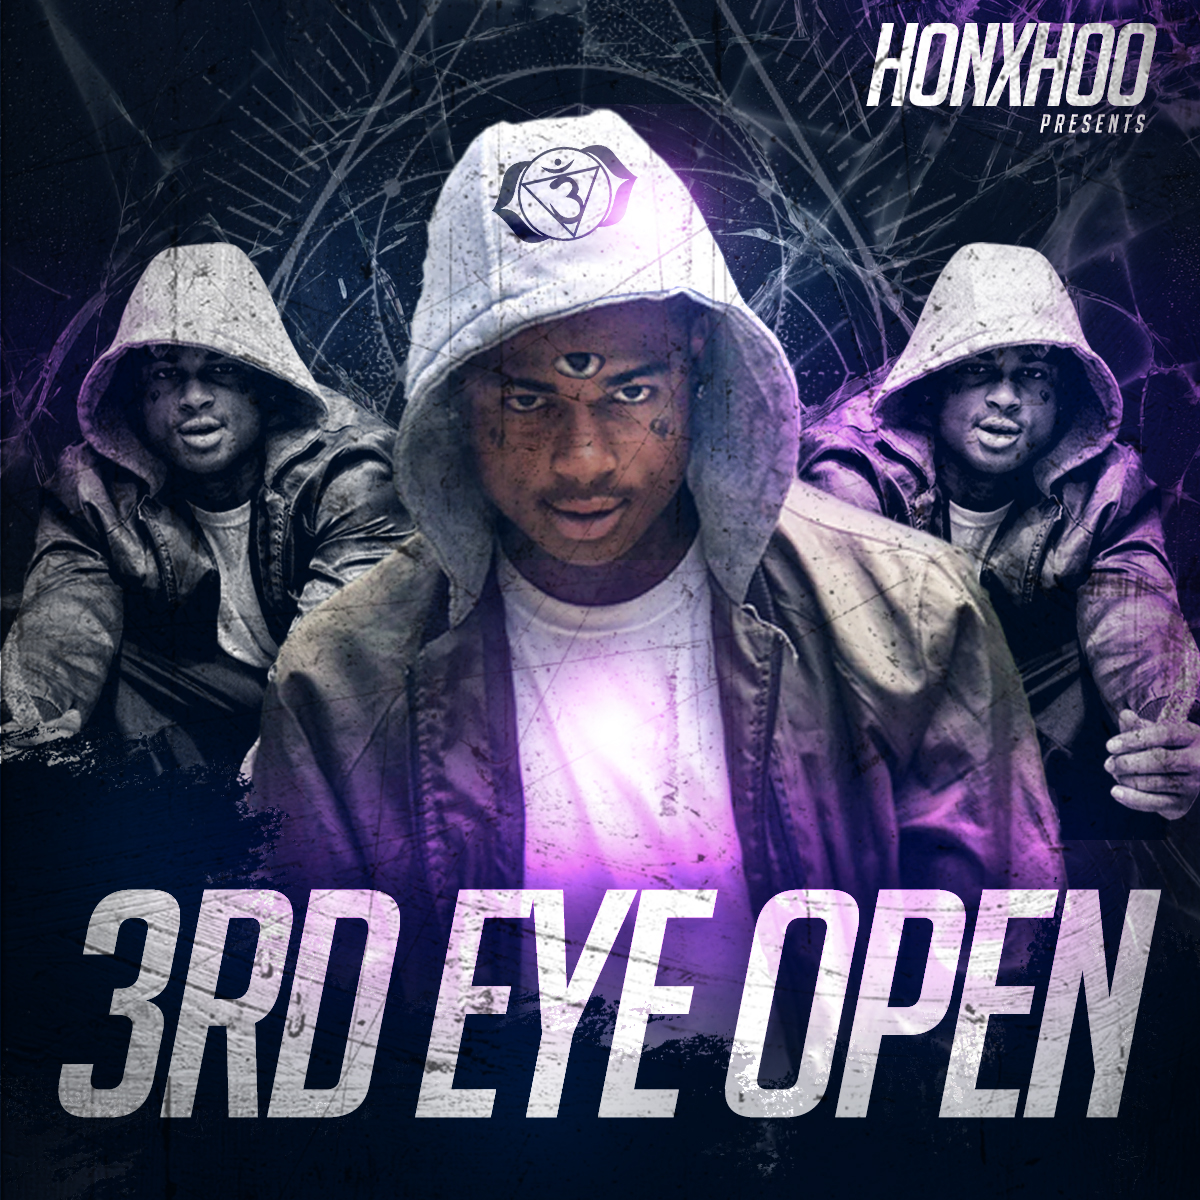 [Mixtape] Honxhoo – 3rd Eye Open